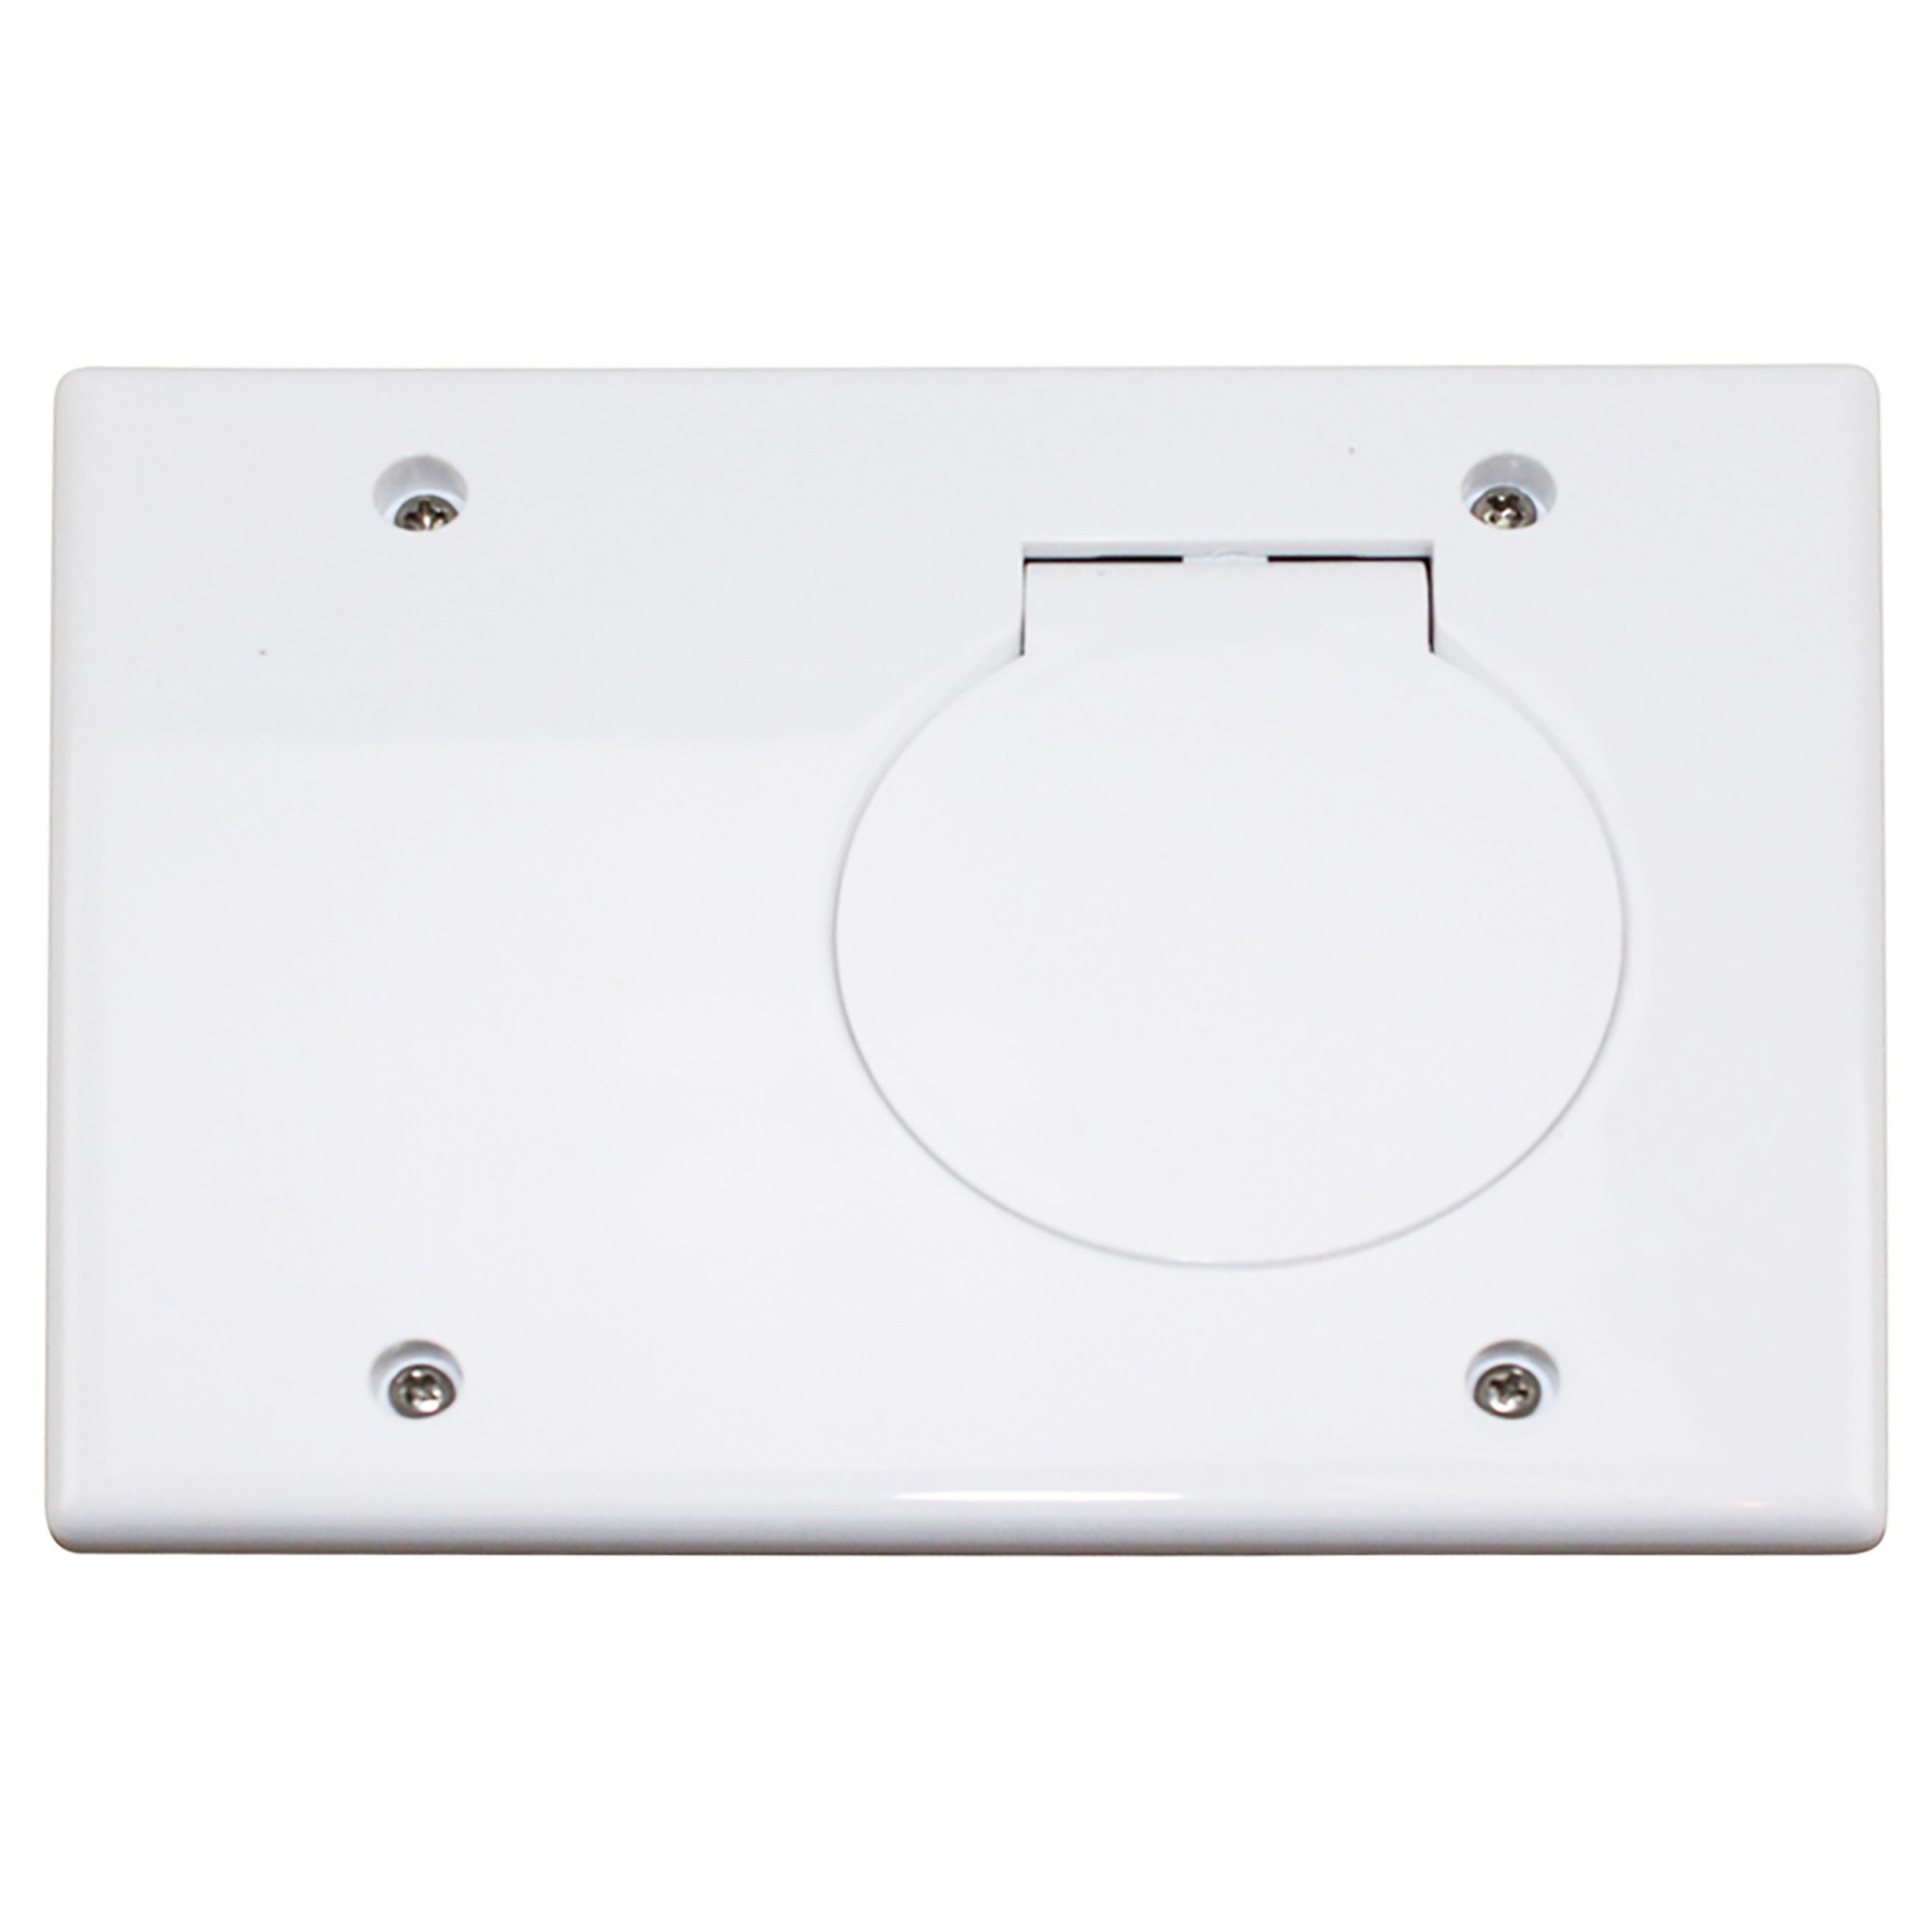 Sylvania RM36 SentryLight Concealed Recessed 2-Lamp 36W Xenon Emergency Light, 12V, Remote